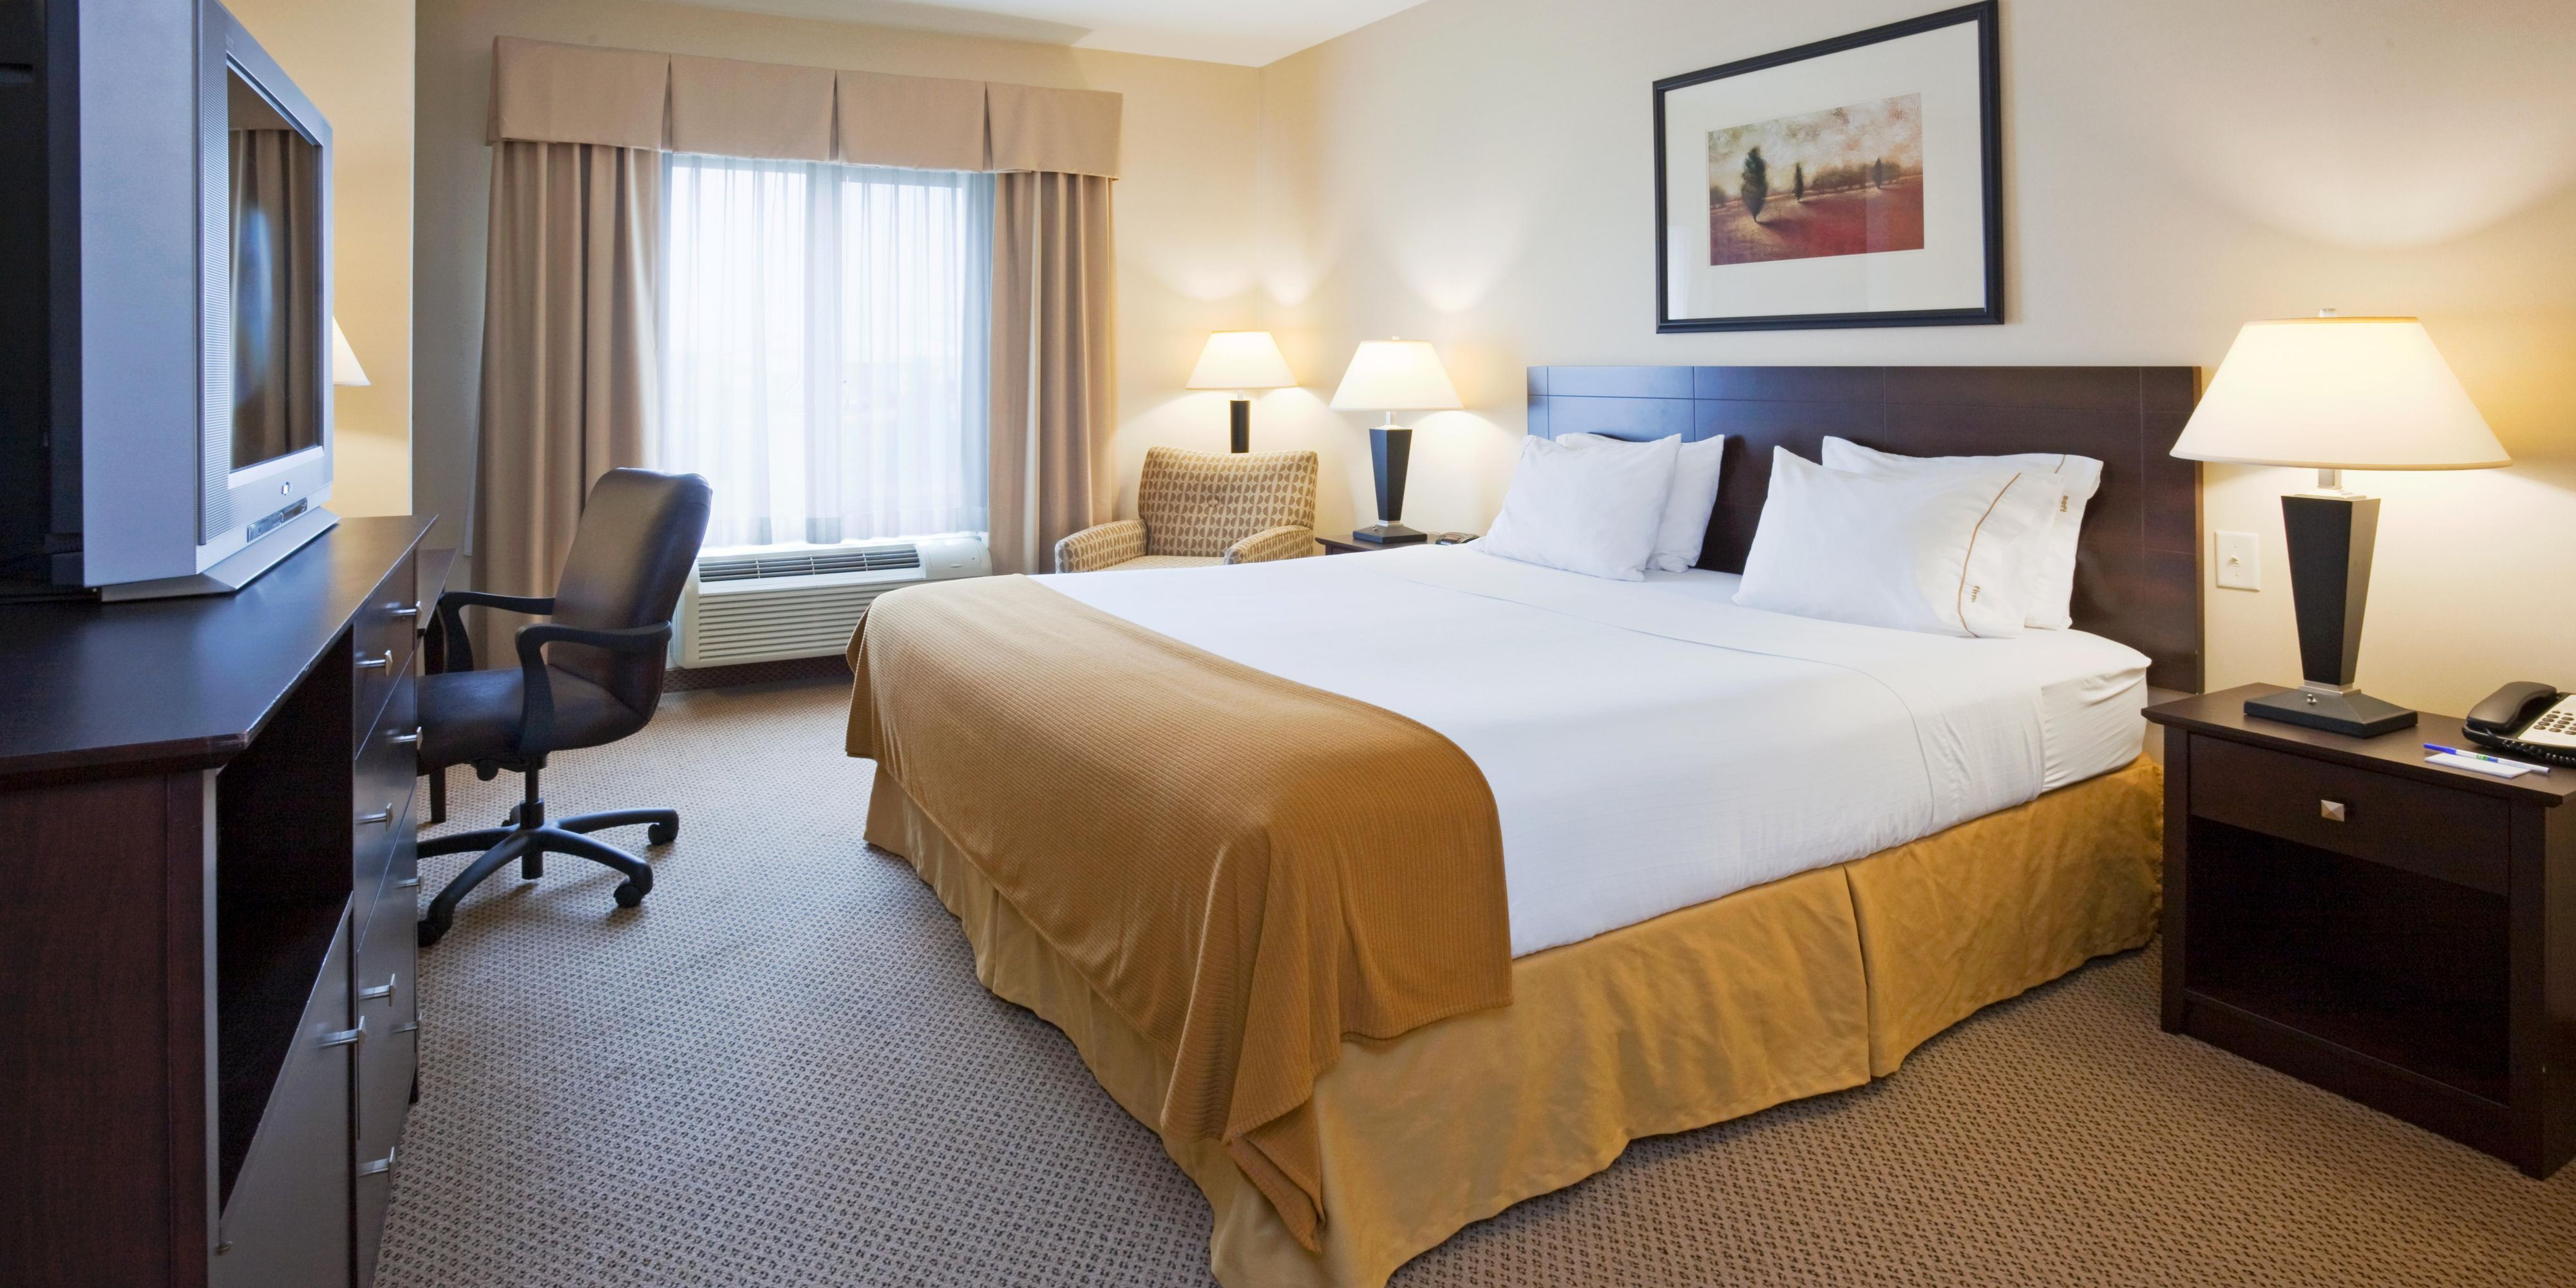 Holiday Inn Express And Suites Brandon 2532095091 2x1